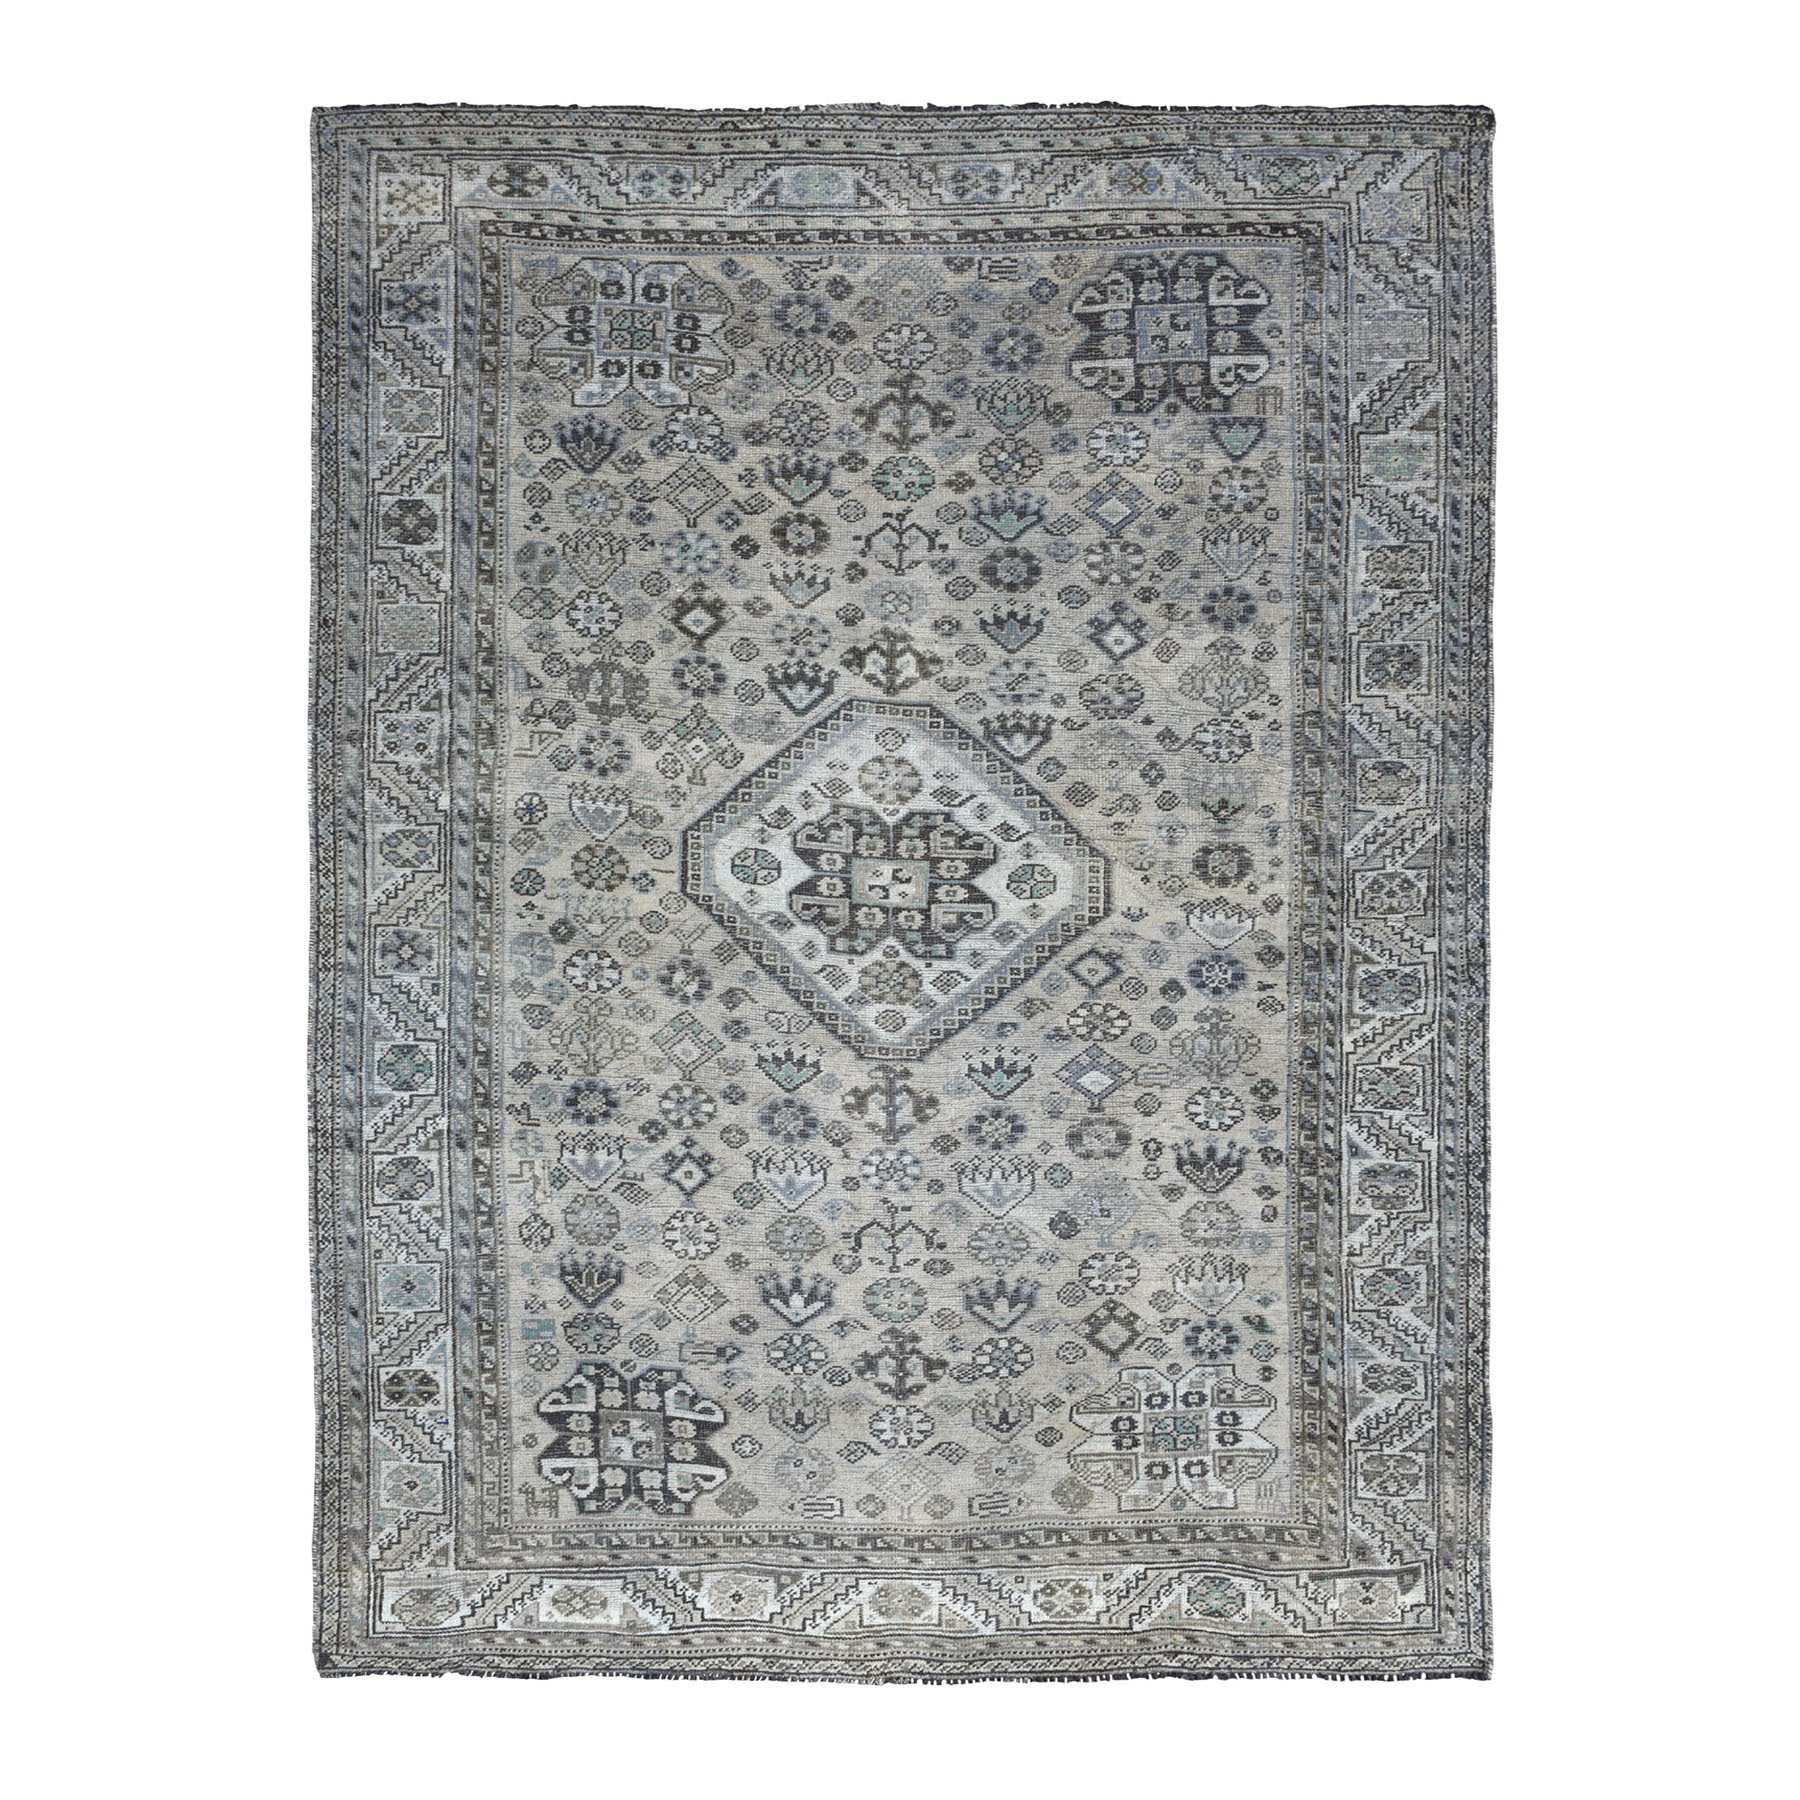 7'X10' Vintage And Worn Down Distressed Colors Persian Qashqai Hand Knotted Bohemian Rug moaed06e